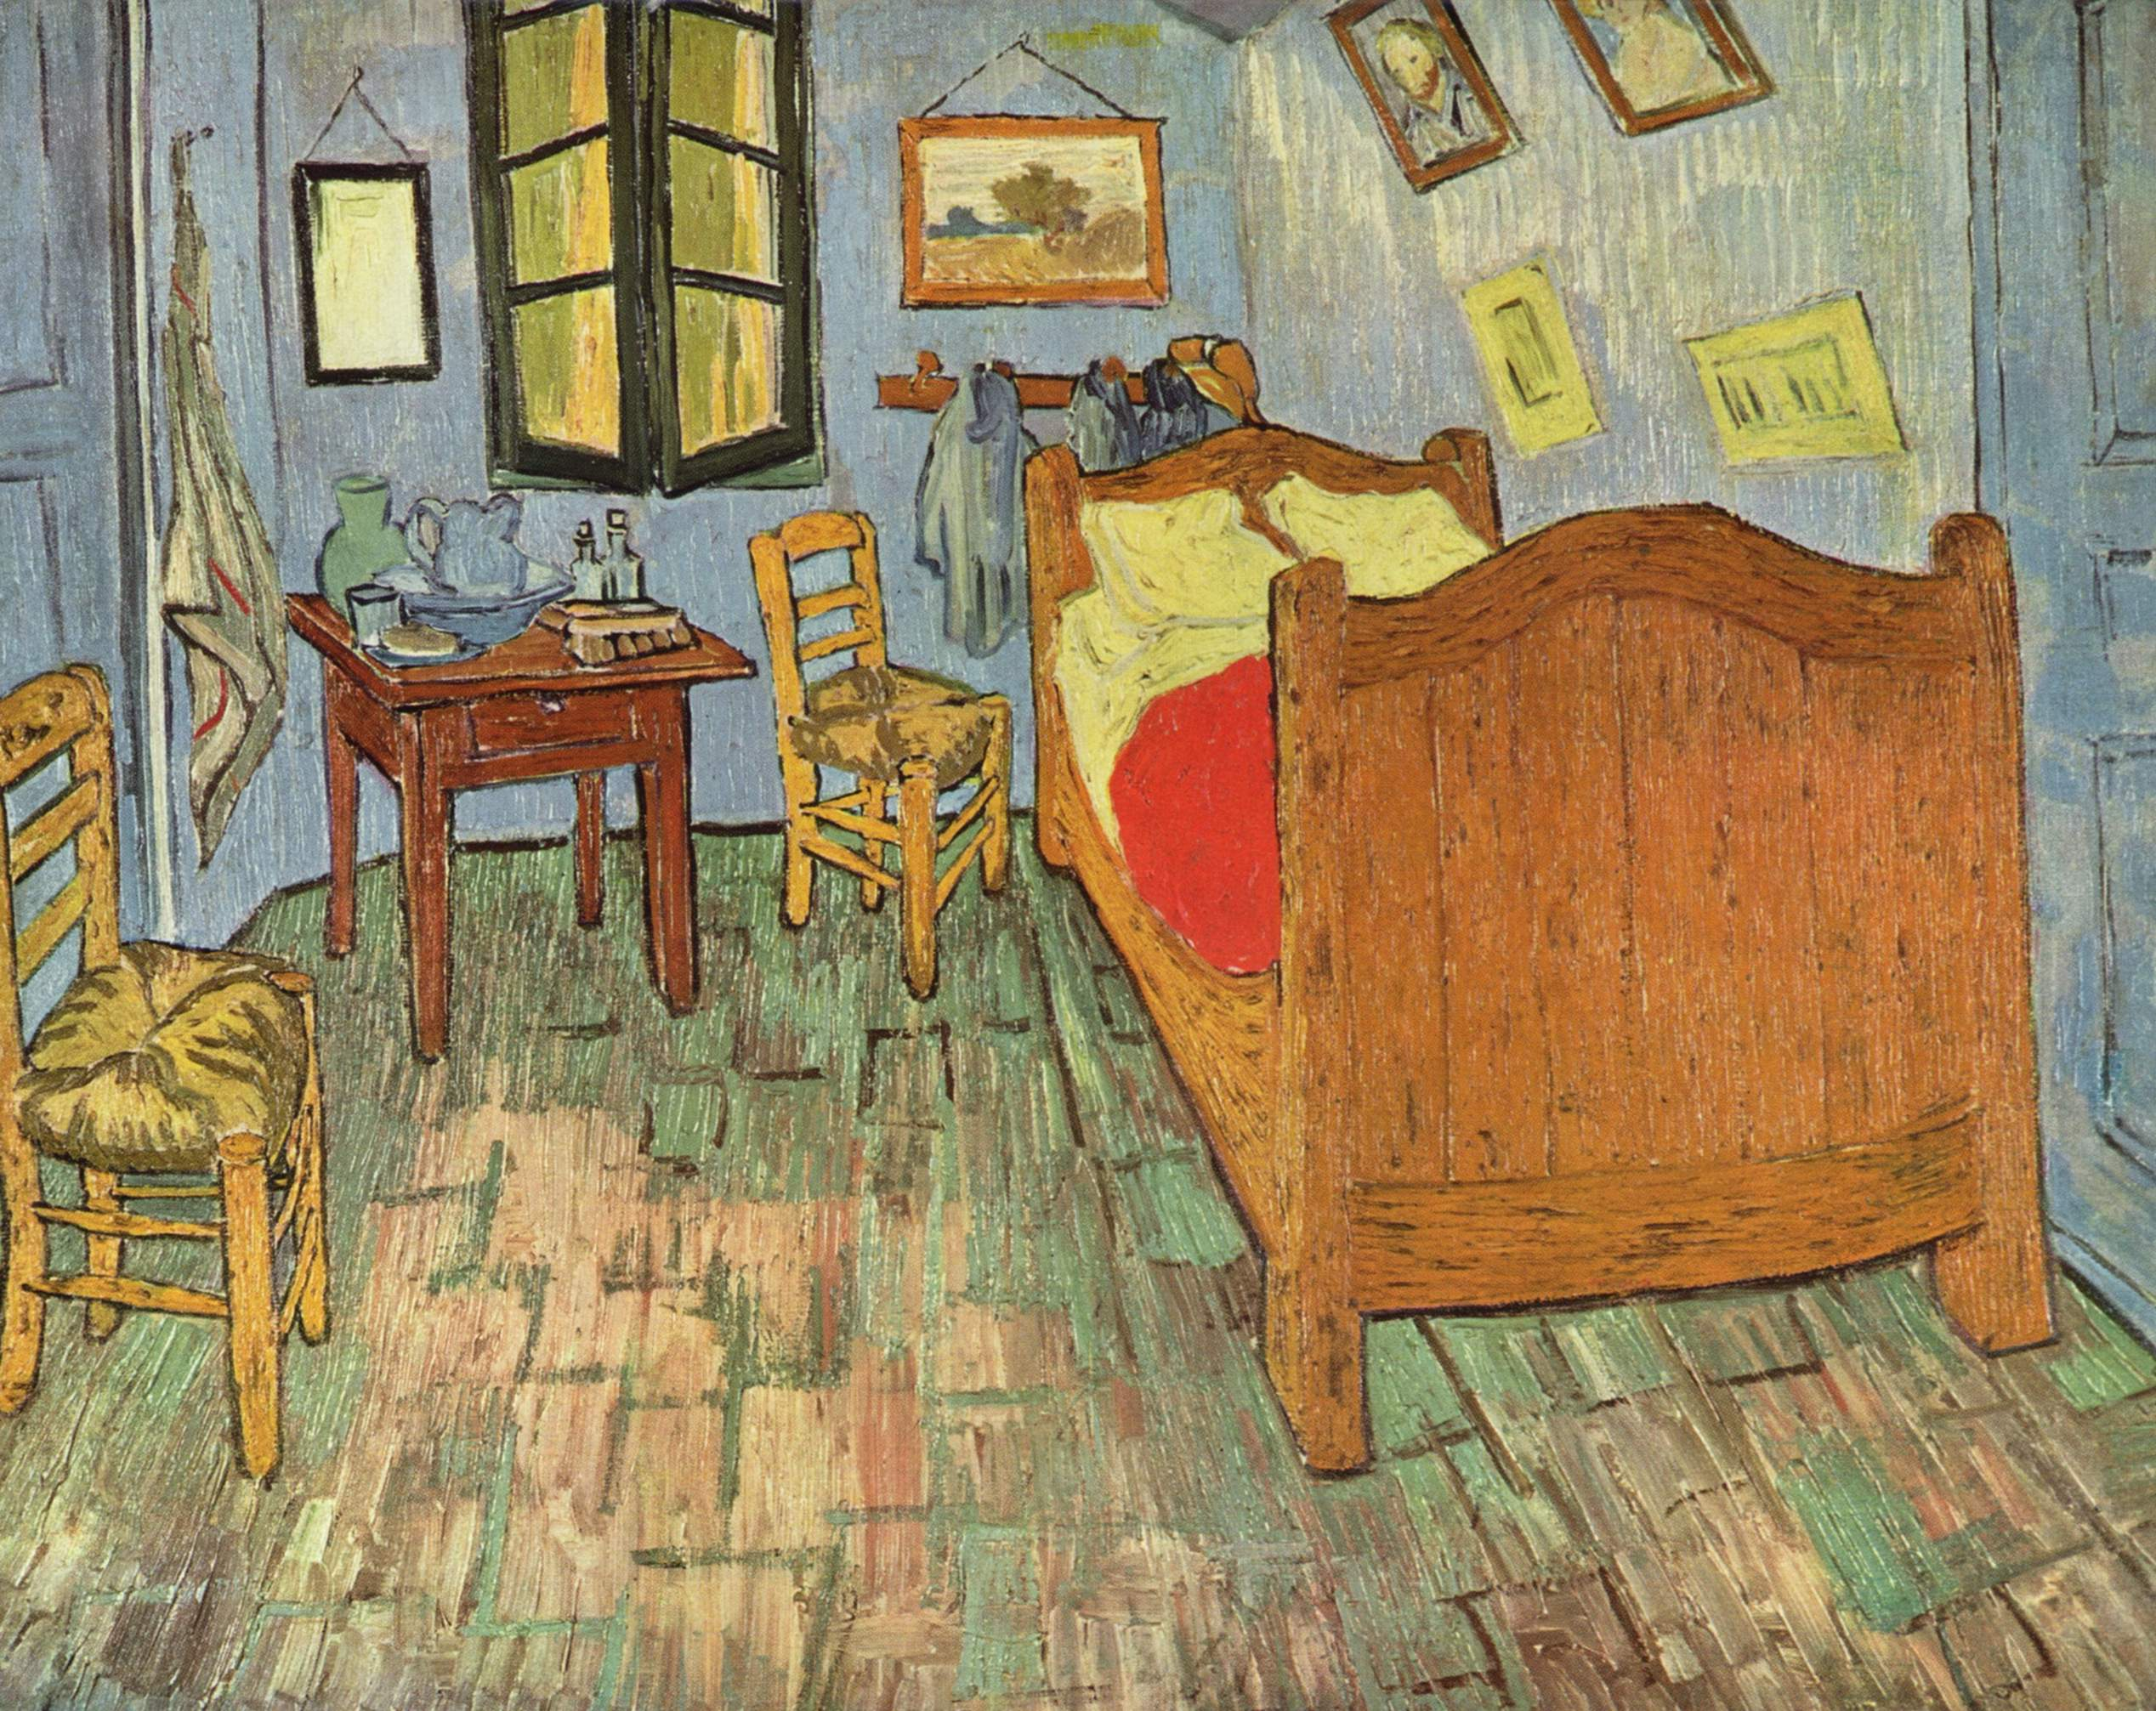 File:Vincent Willem van Gogh 135.jpg - Wikimedia Commons